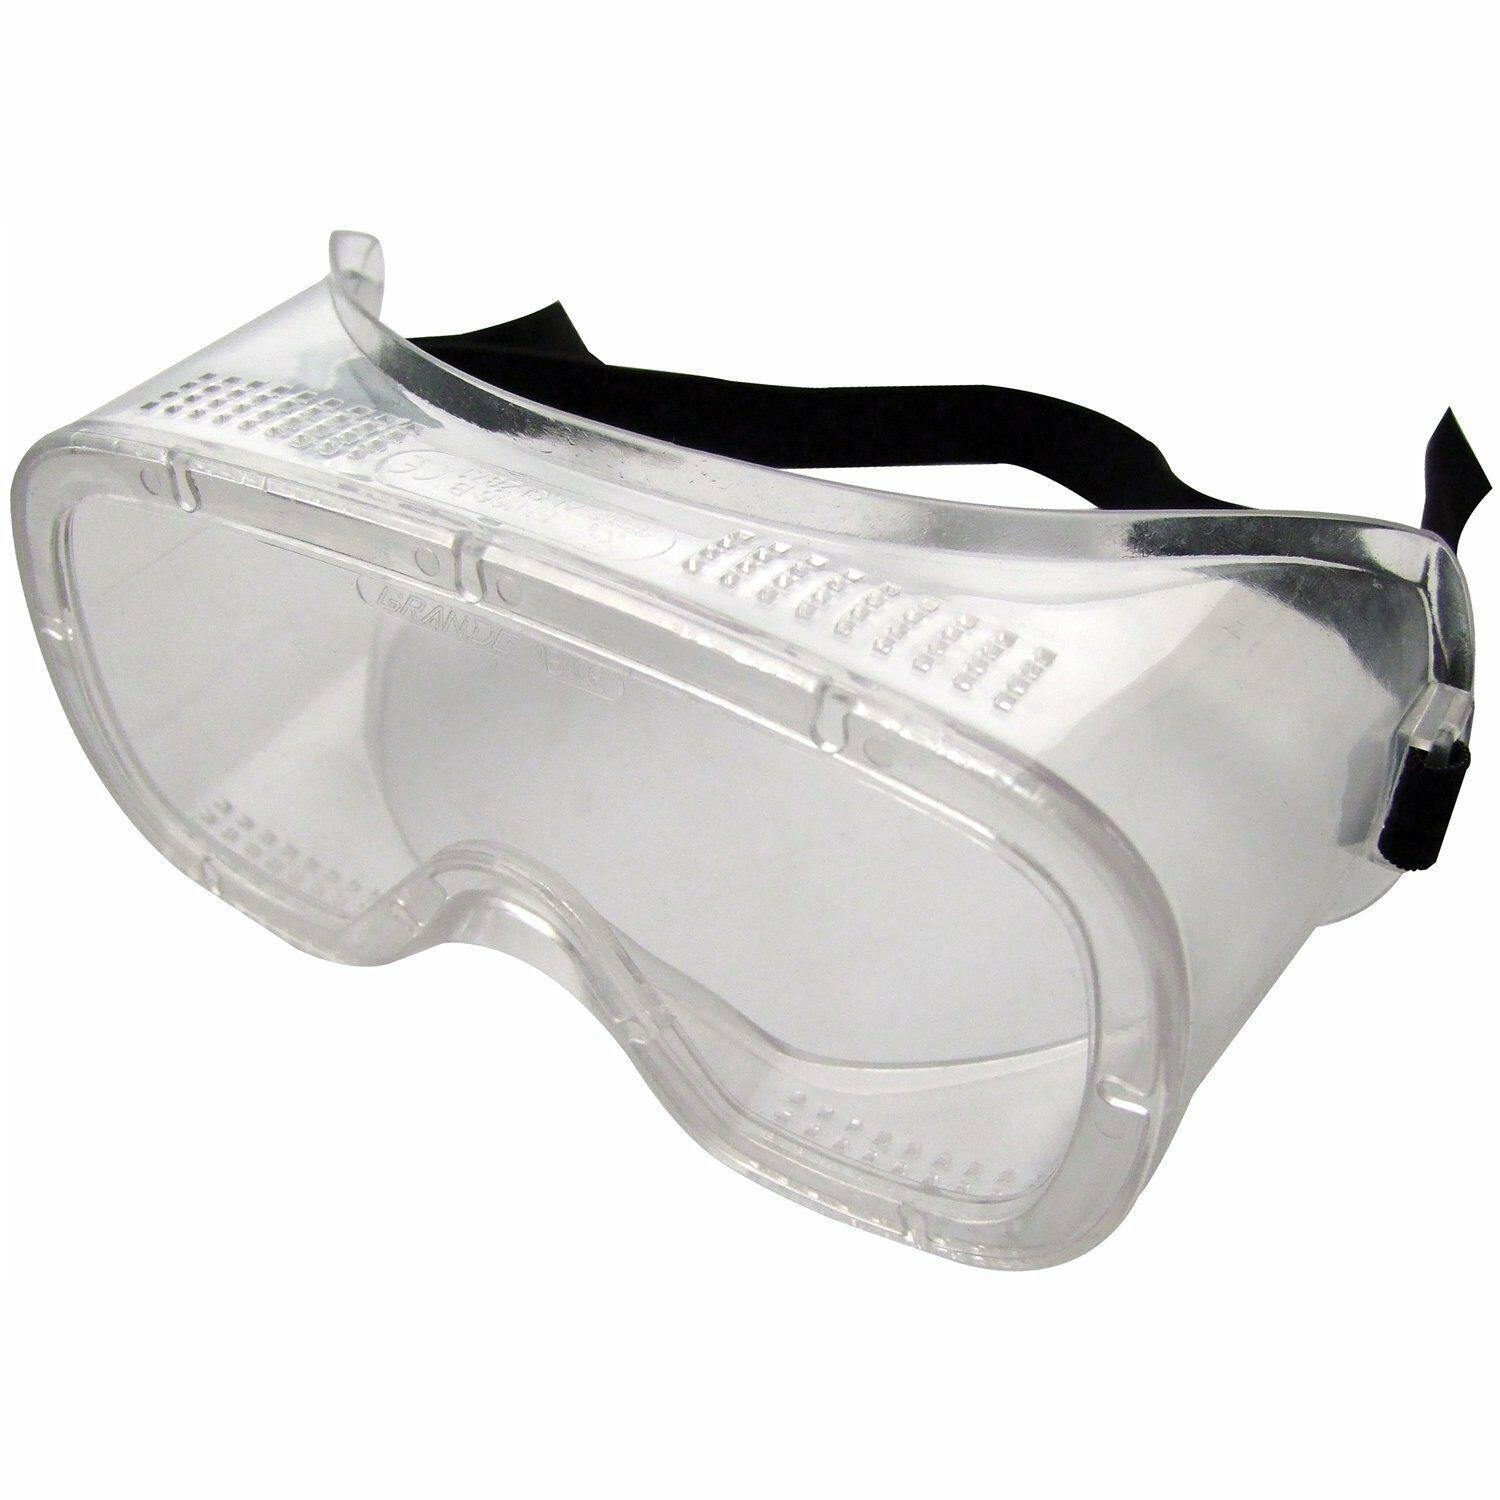 Am-Tech Safety Goggles